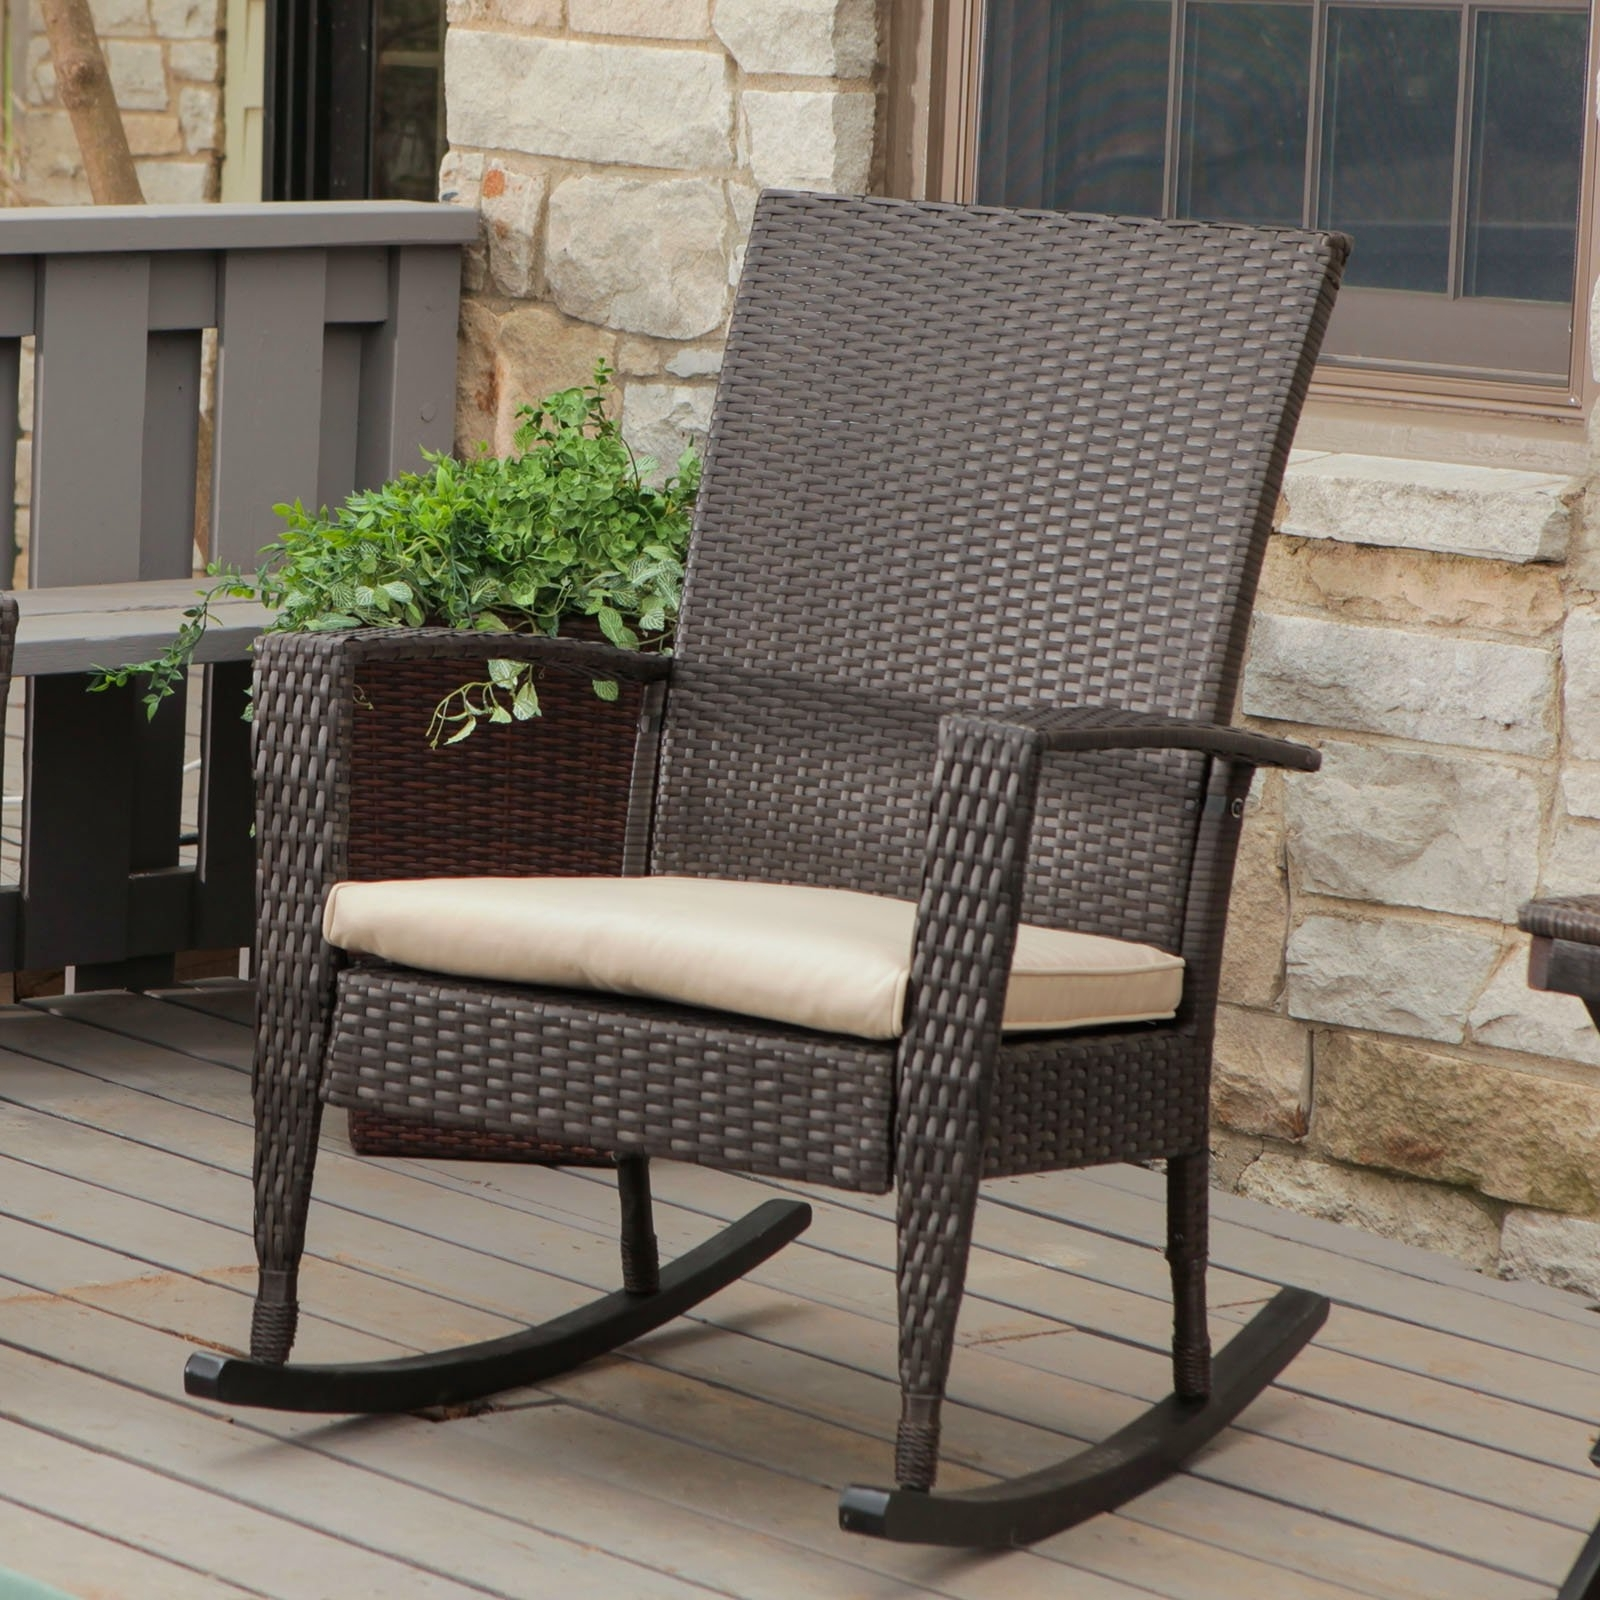 Outdoor Plastic Wicker Rocking Chairs Sale Black Chair Set White With Regard To Well Known Wicker Rocking Chairs Sets (View 10 of 20)